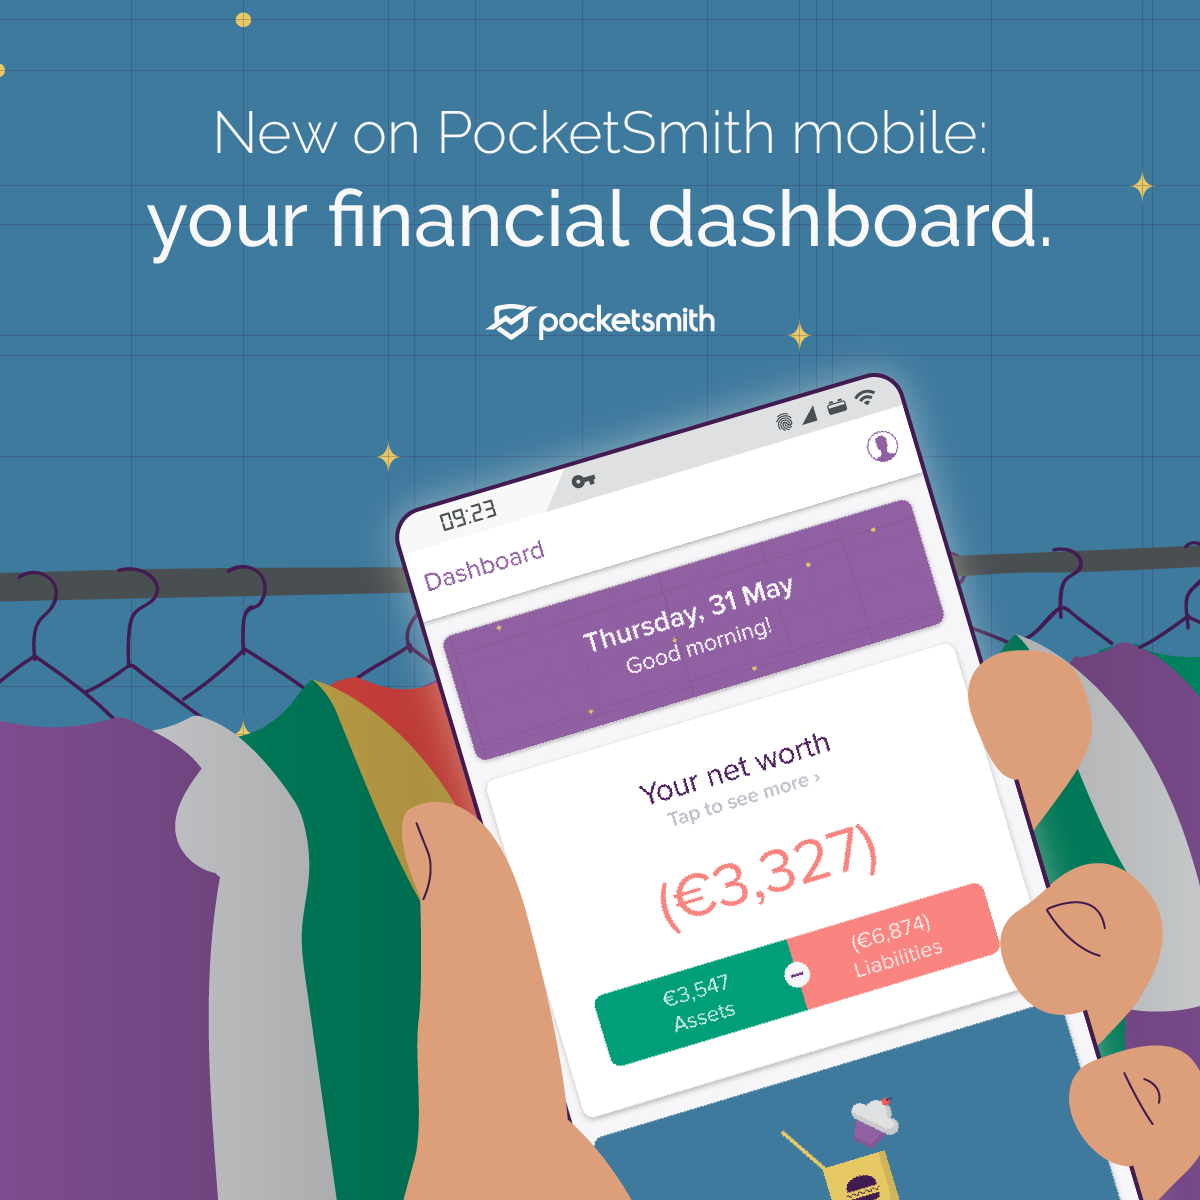 New PocketSmith mobile dashboard released